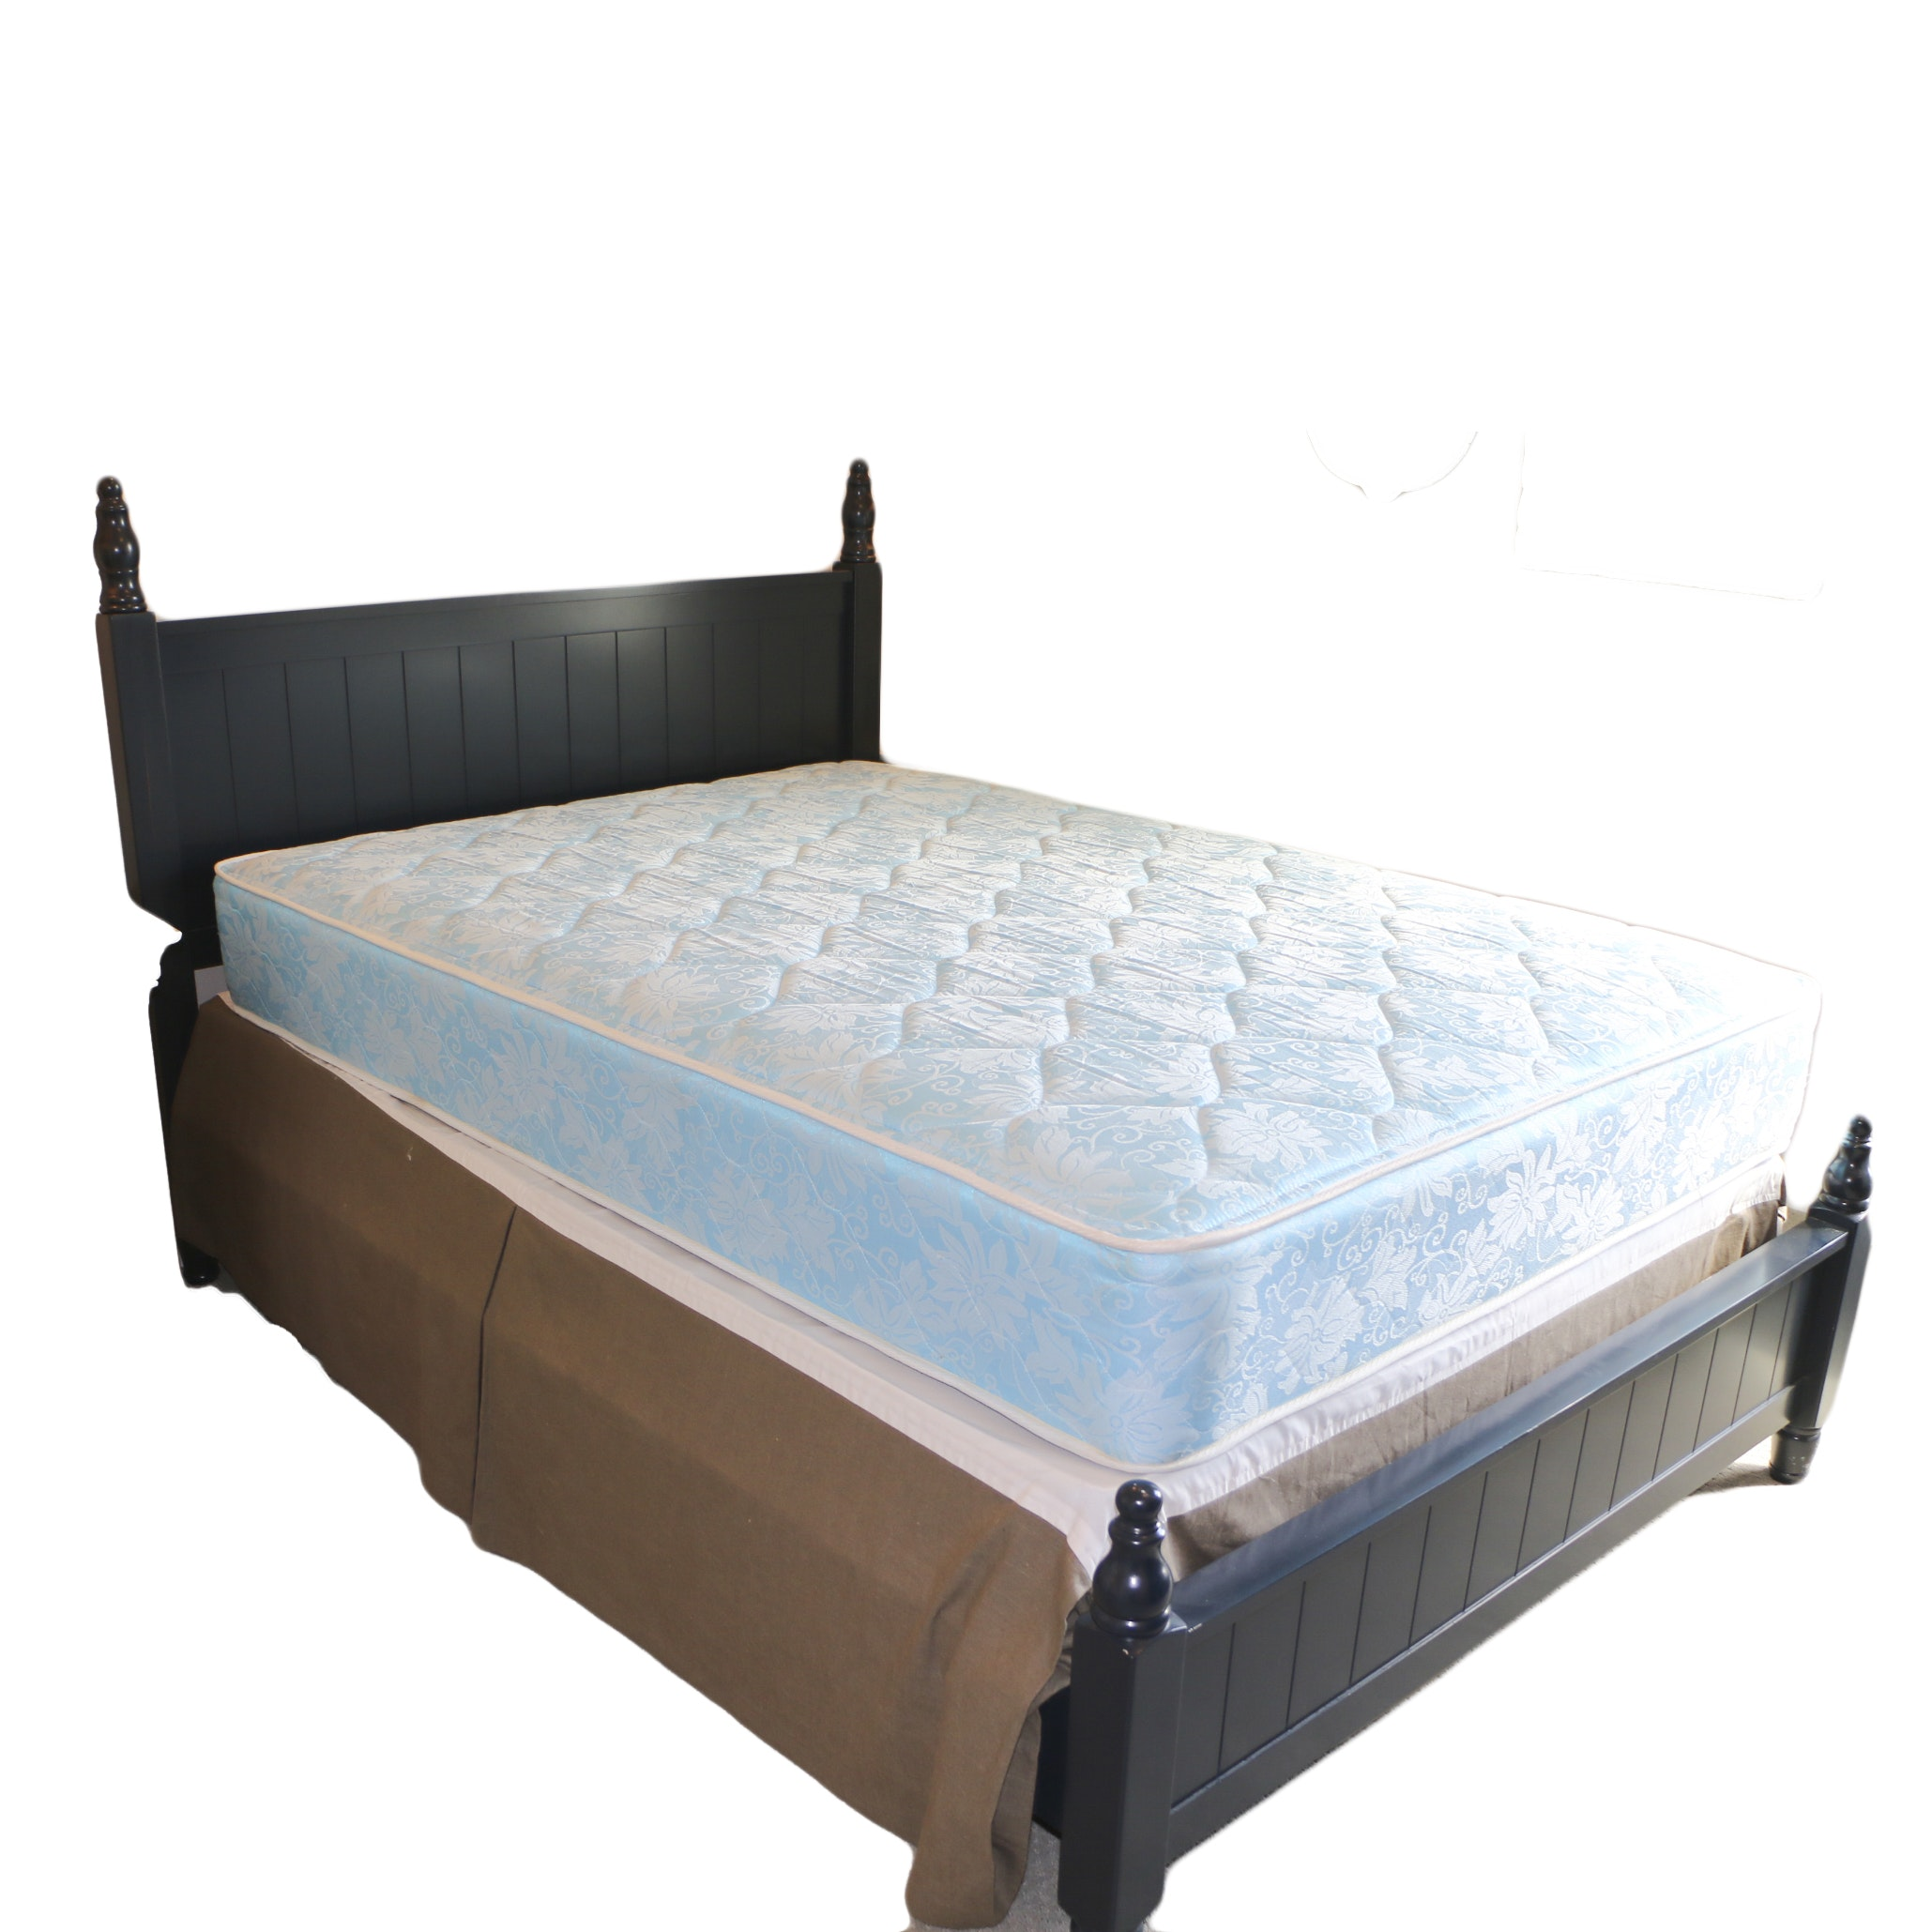 Contemporary Black Finish Full Size Bed Frame